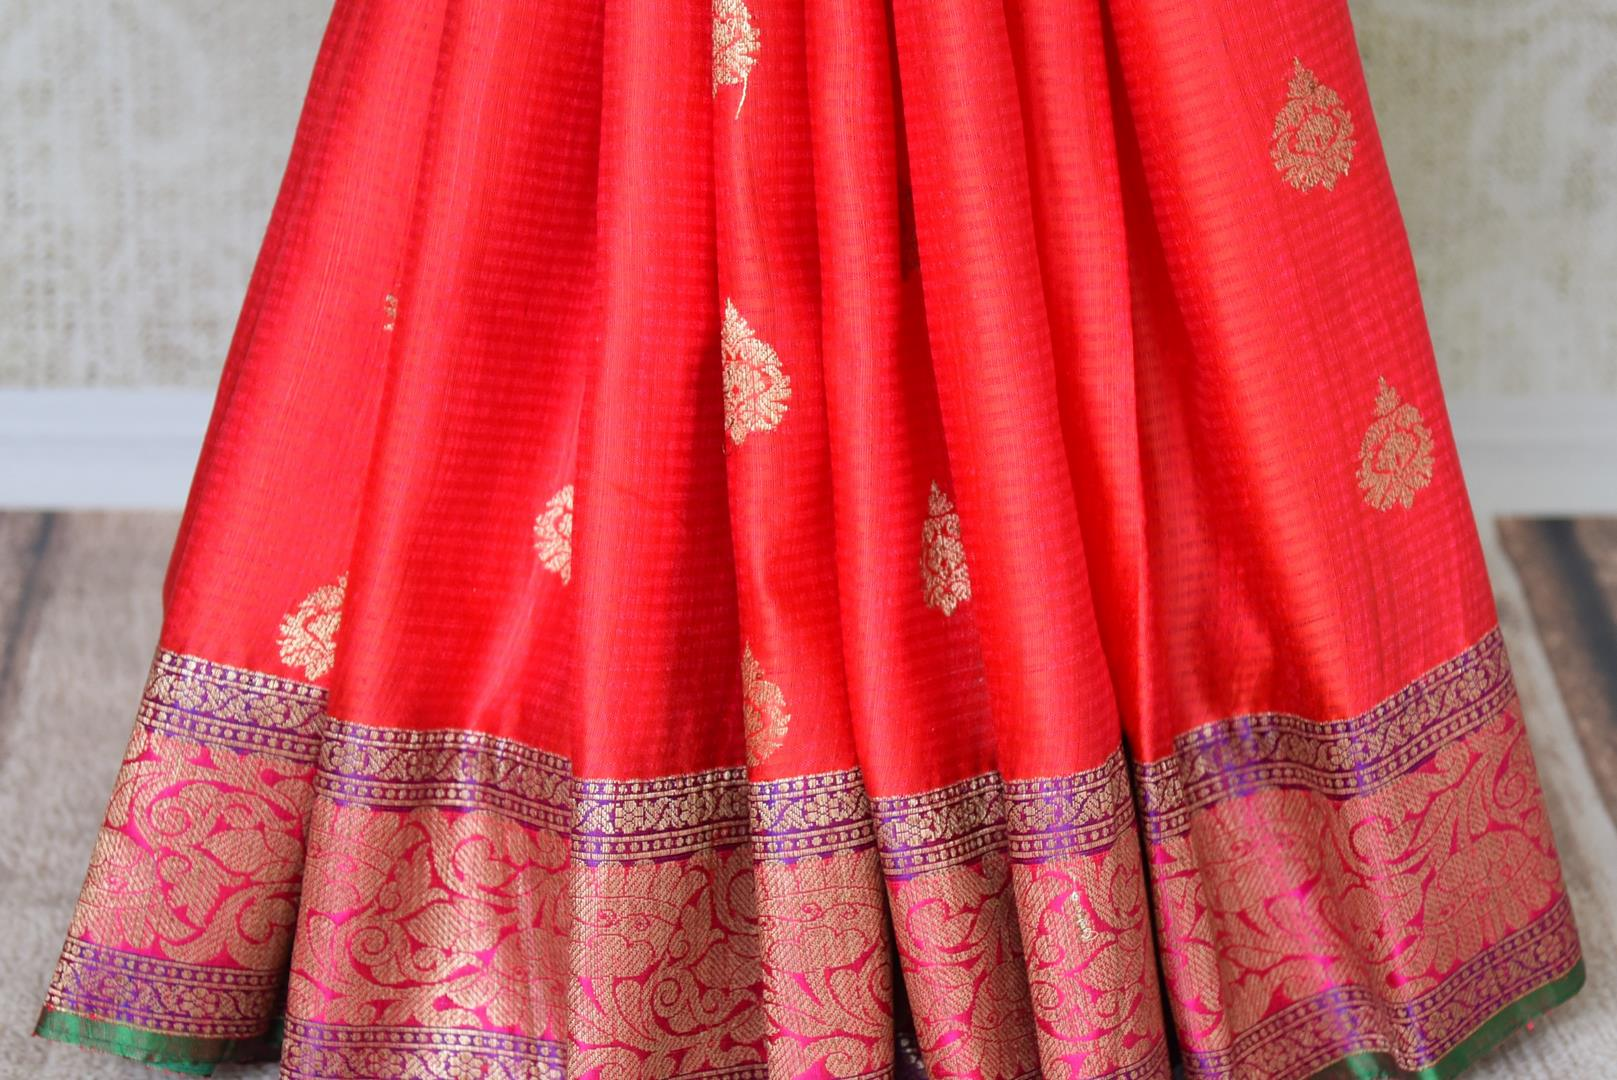 Buy gorgeous pink tussar Banarasi saree with zari border online in USA. If you are heading to an Indian wedding and all you want is a rich traditional style then look no further than Pure Elegance Indian clothing store in USA. We have an exclusive range of Indian designer saris, traditional Banarasi saris and much....-pleats